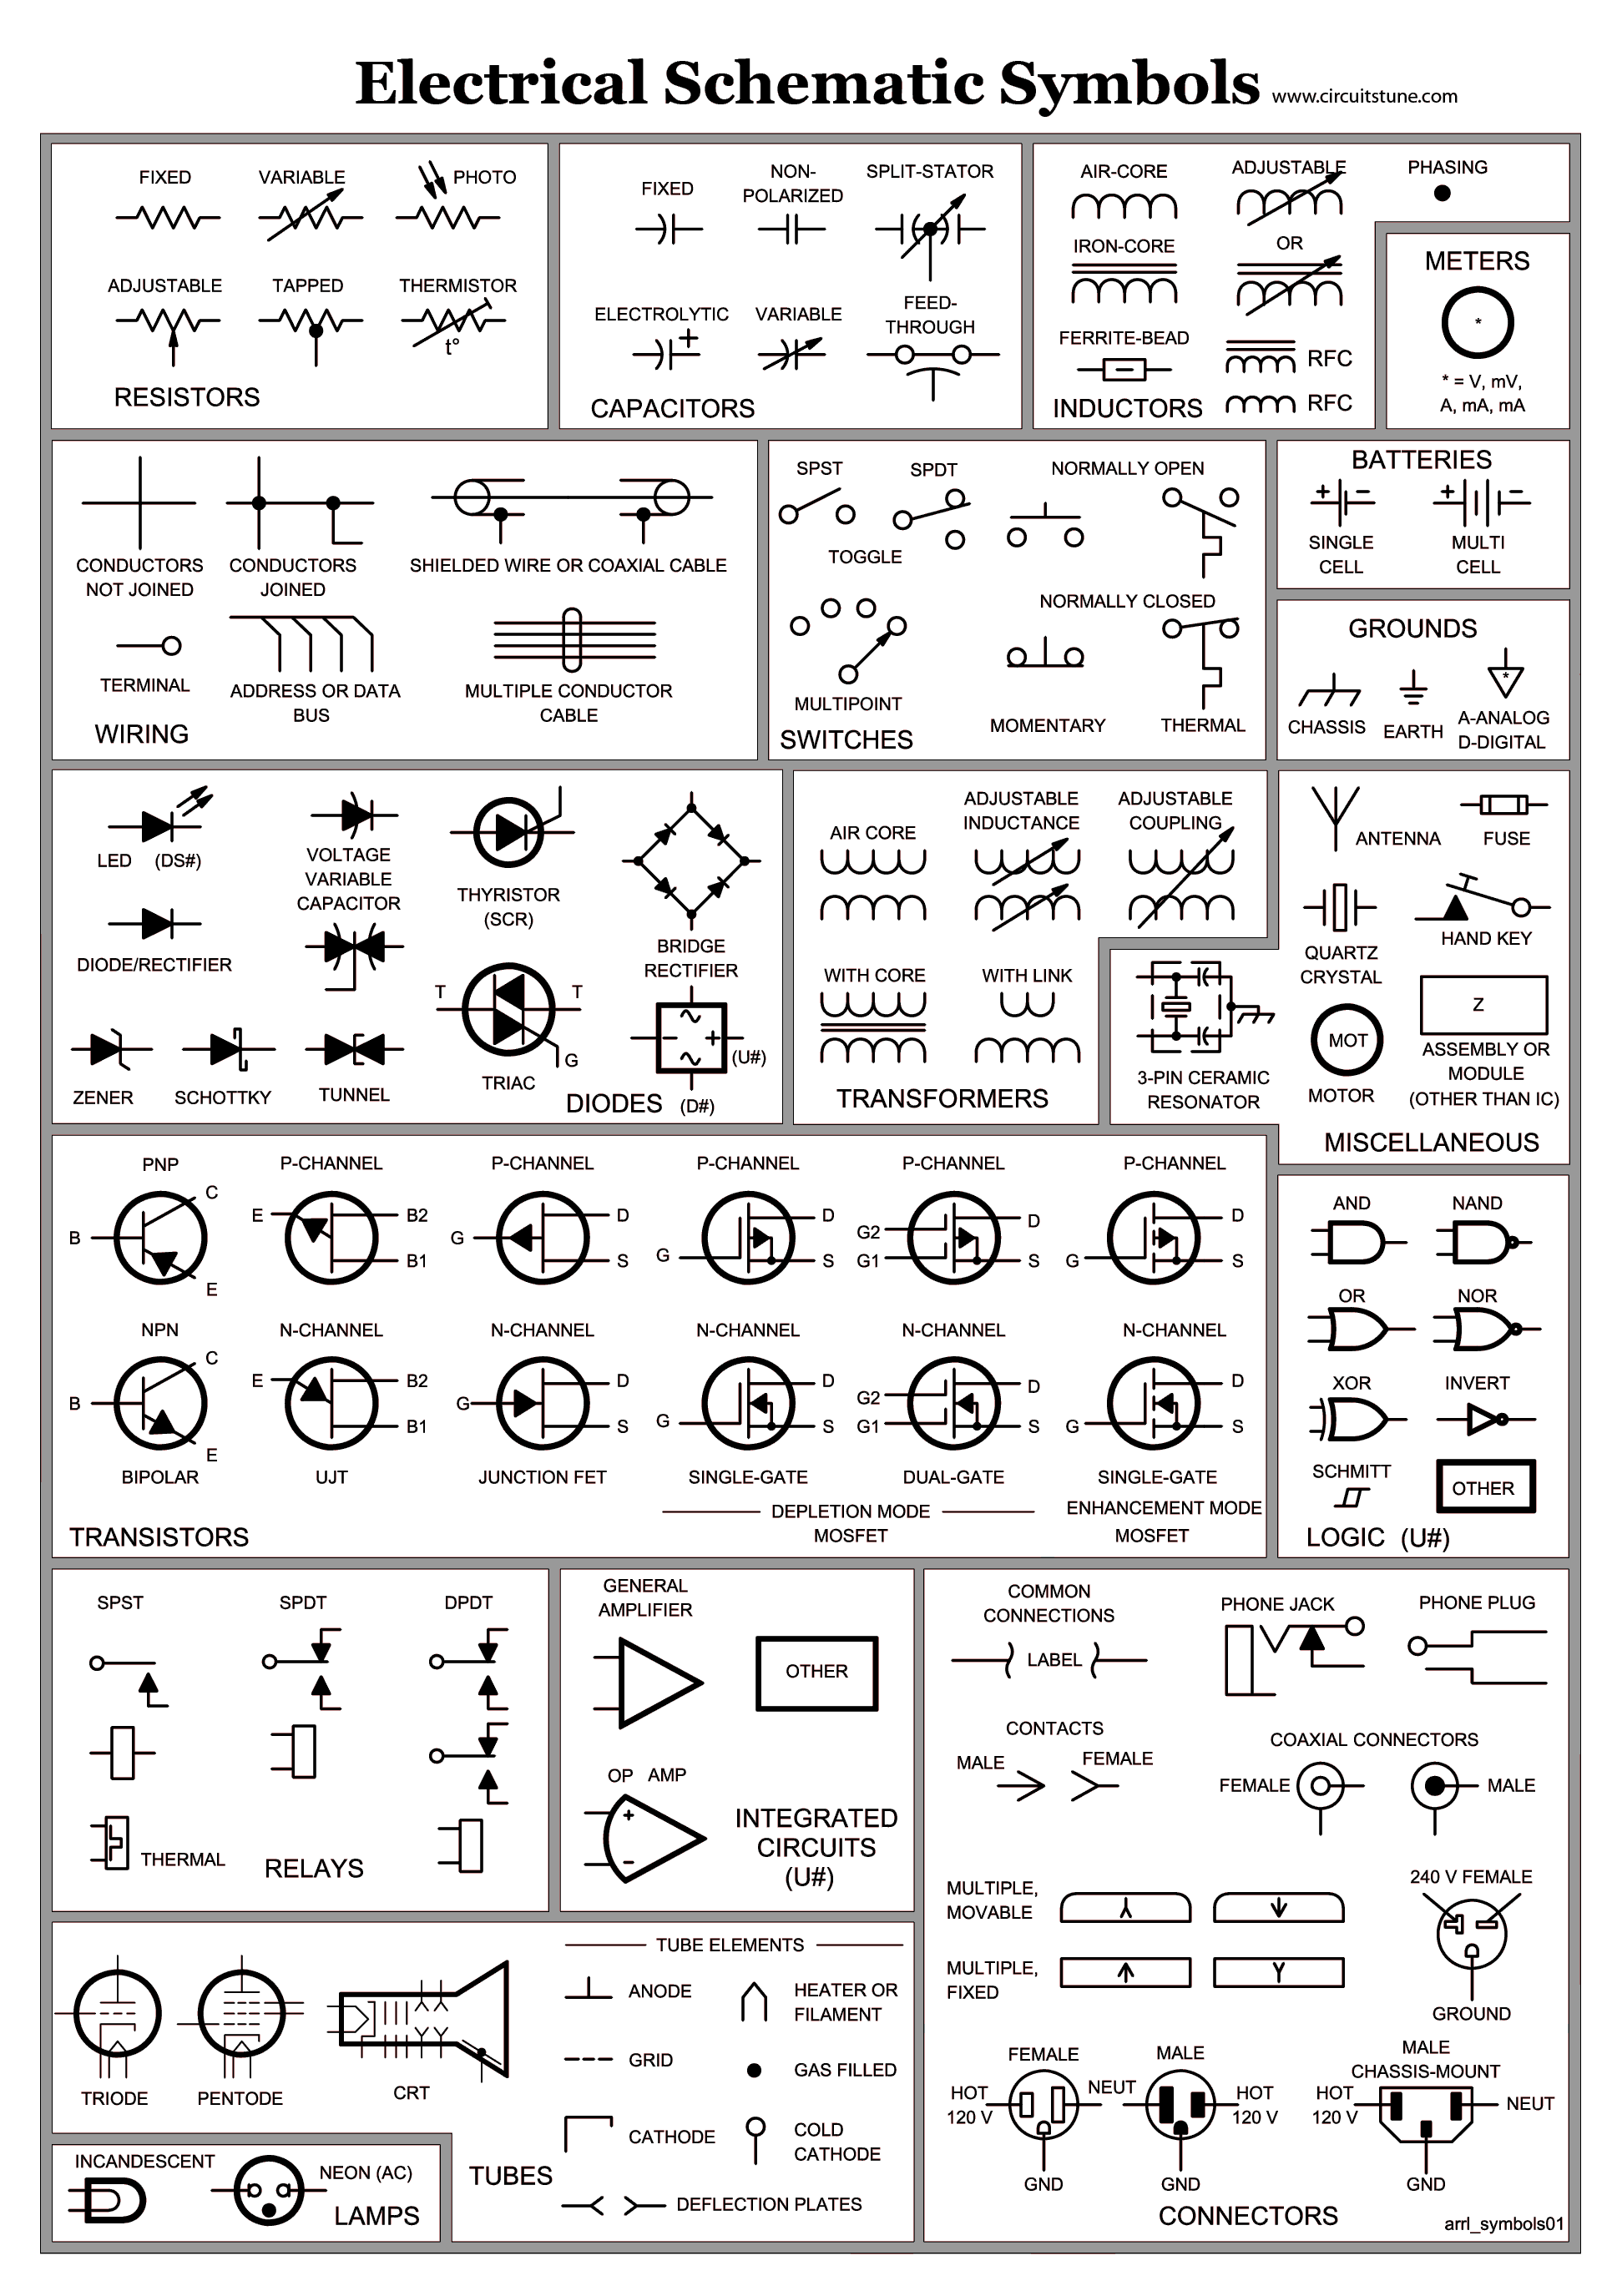 electrical schematic symbols wire diagram symbols automotive wiring rh pinterest com AC Circuit Diagram Circuit Diagram Symbols